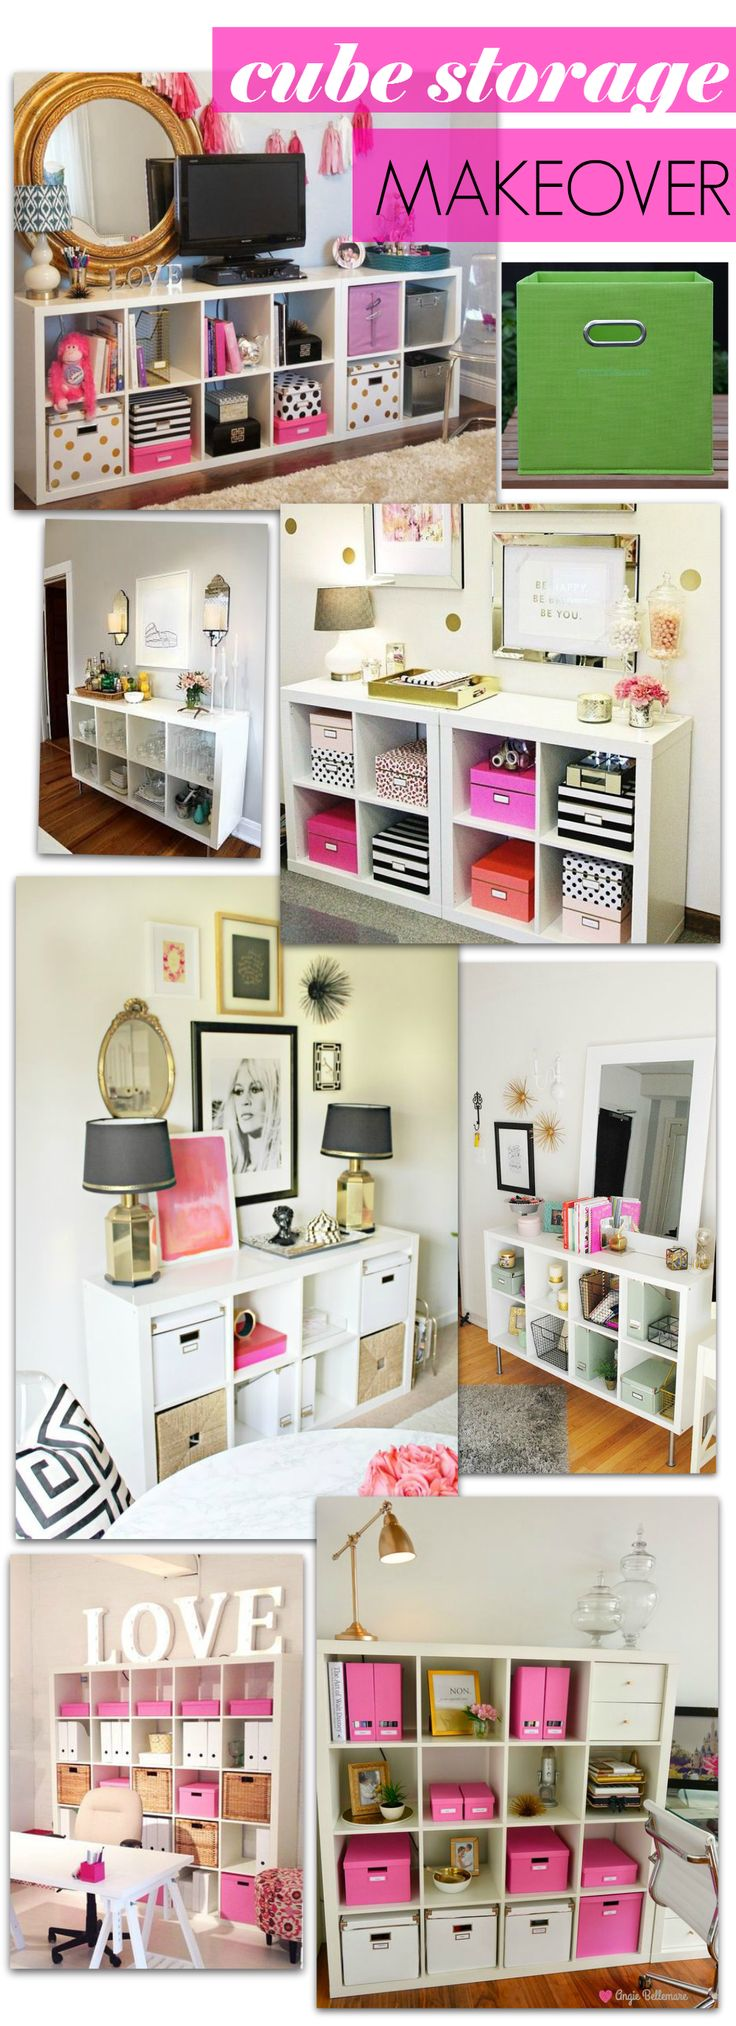 Best 25+ Cube storage ideas on Pinterest | Cube storage shelves ...